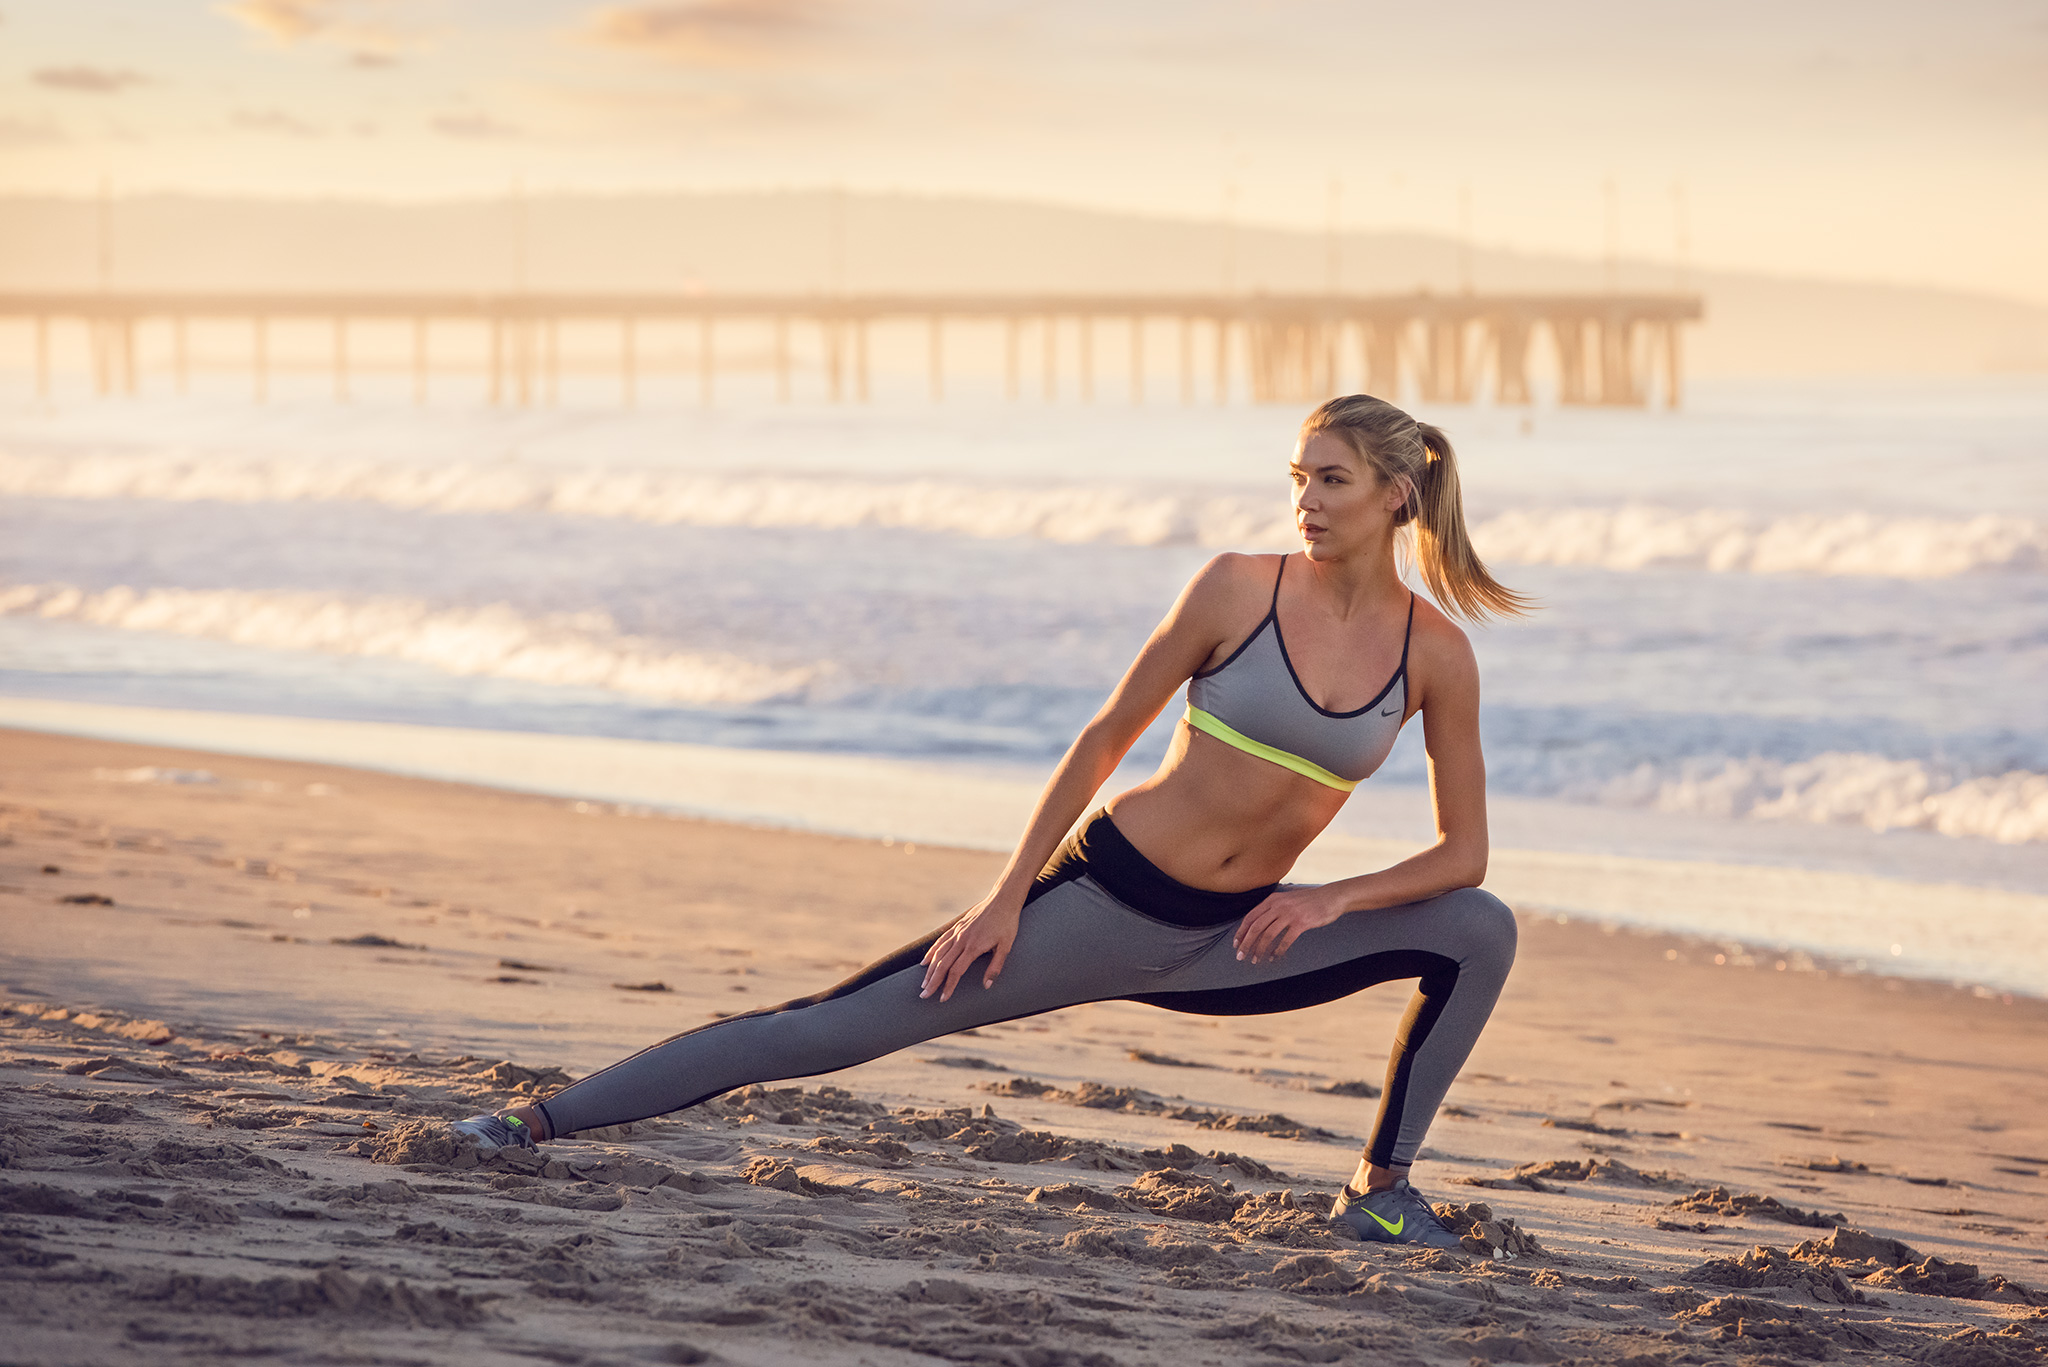 Fit Model Stretches on the Beach | Zach Ancell Photography